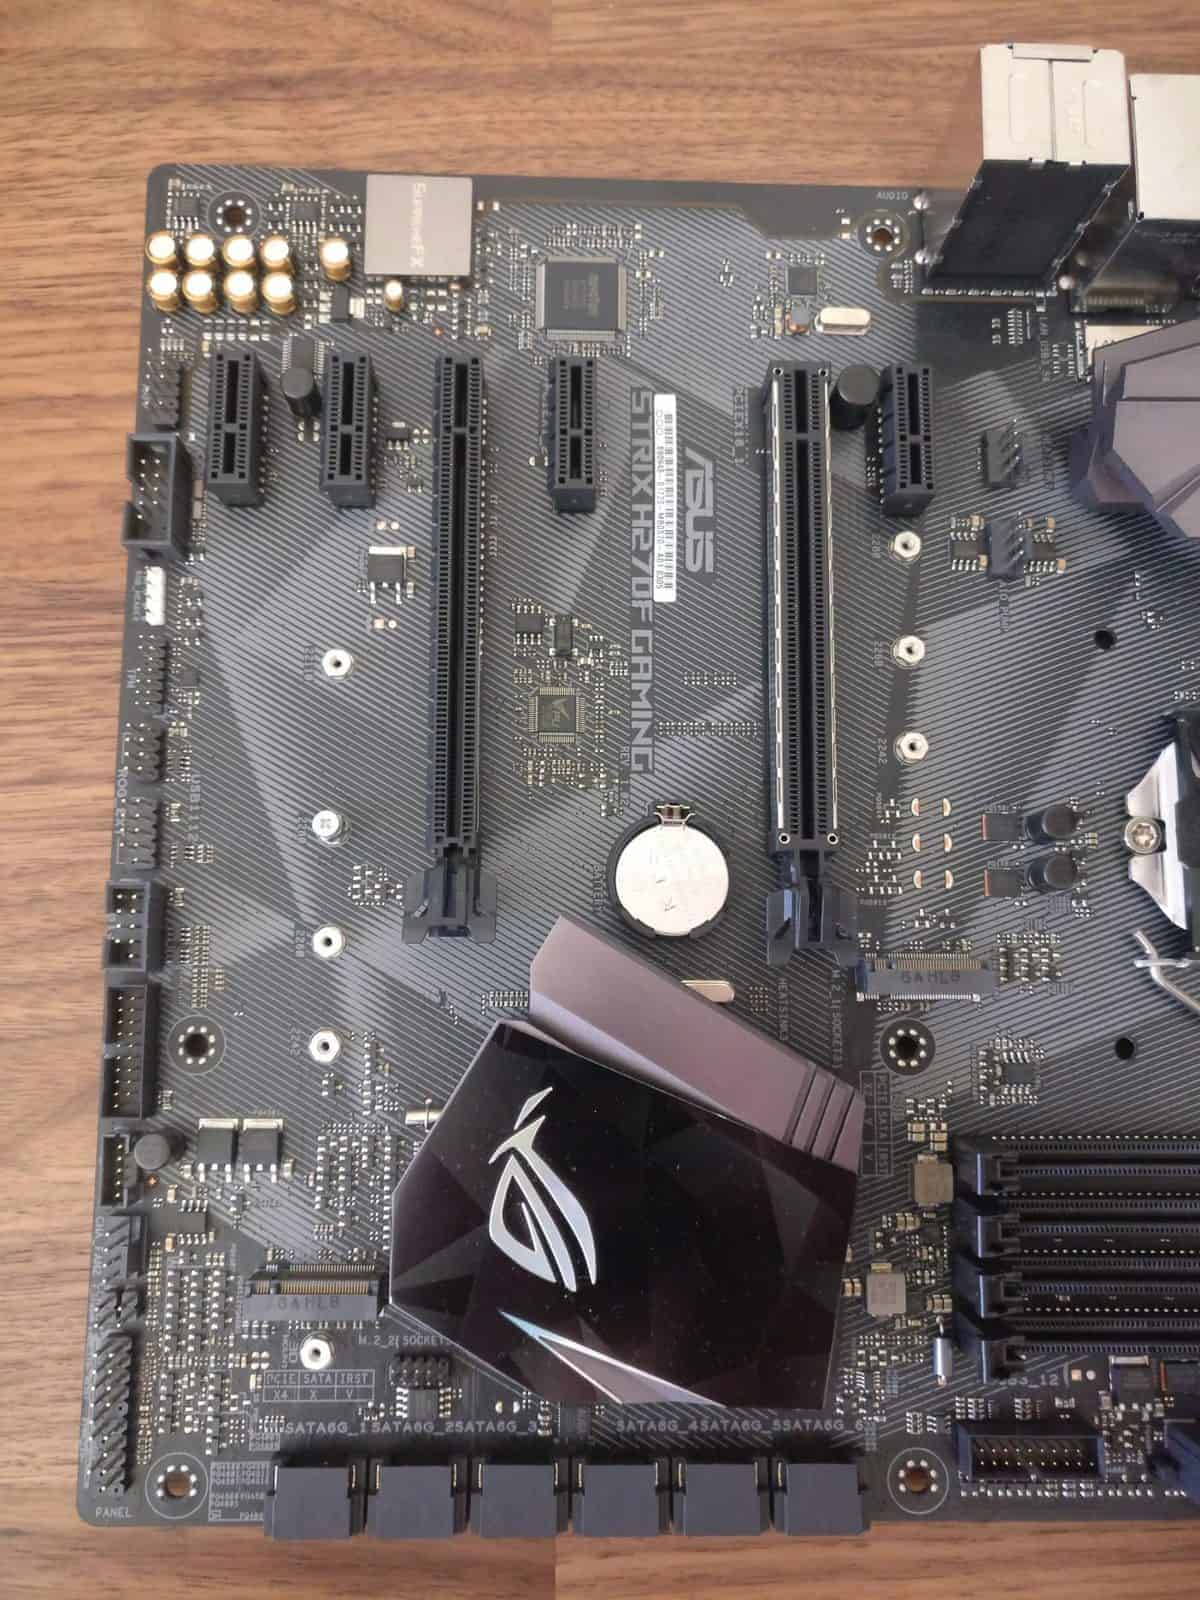 Asus-Strix-Motherboard-Photos-21 Asus Strix H270F ROG Gaming Motherboard Review